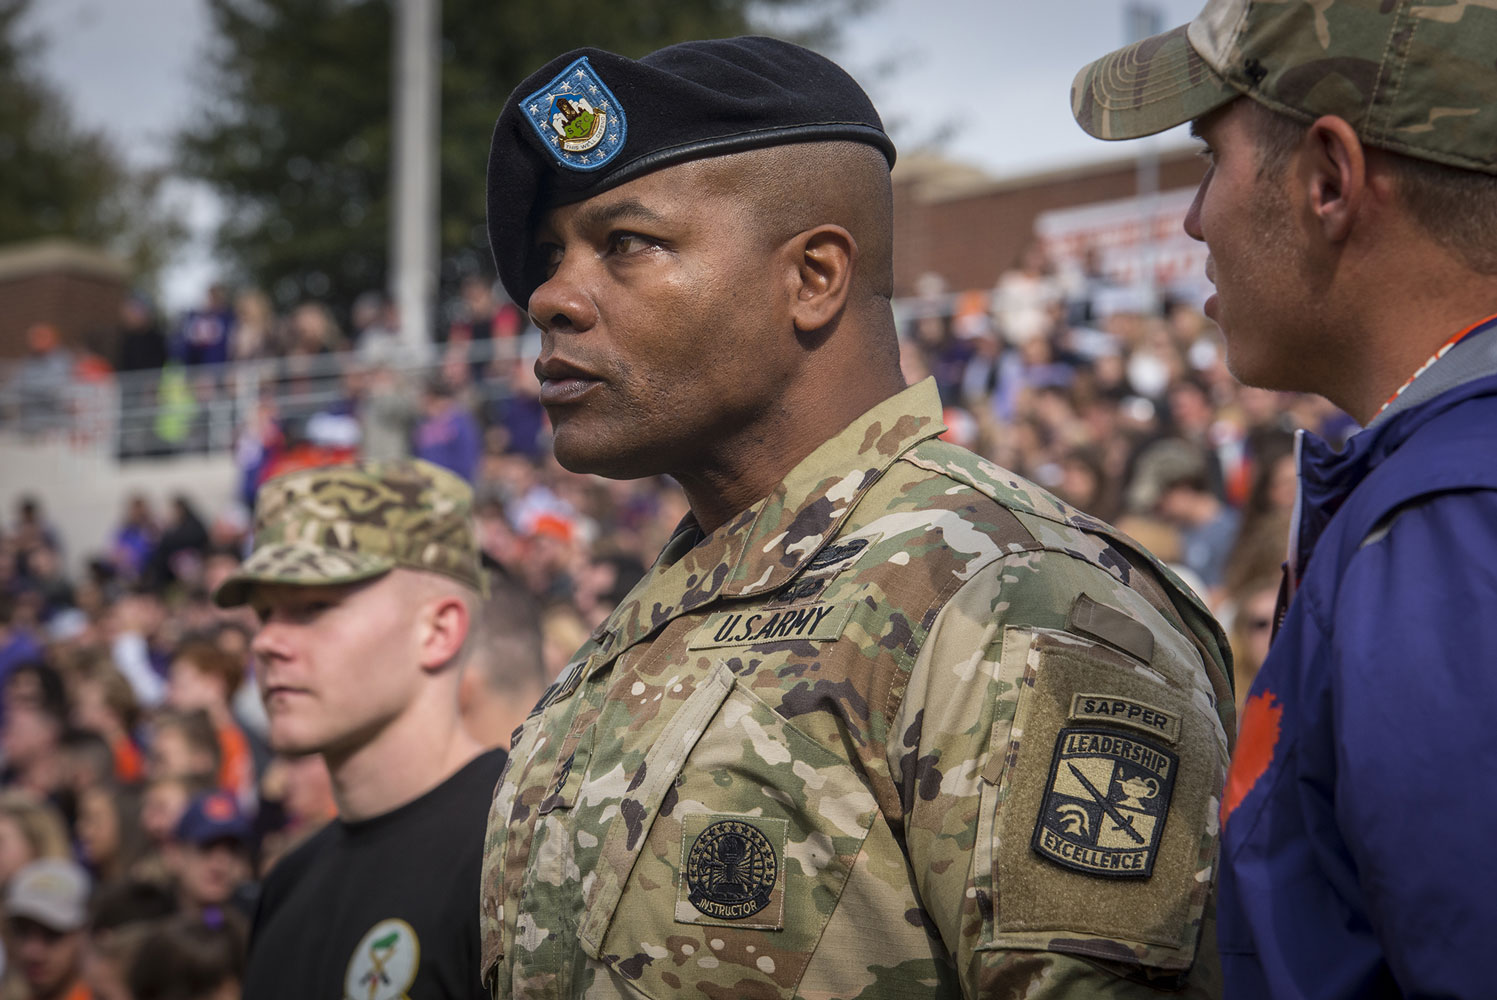 Clemson University military science instructor Sgt. 1st Class Lekendrick Stallworth watches the National Champion Clemson Tigers play the Citadel Bulldogs.